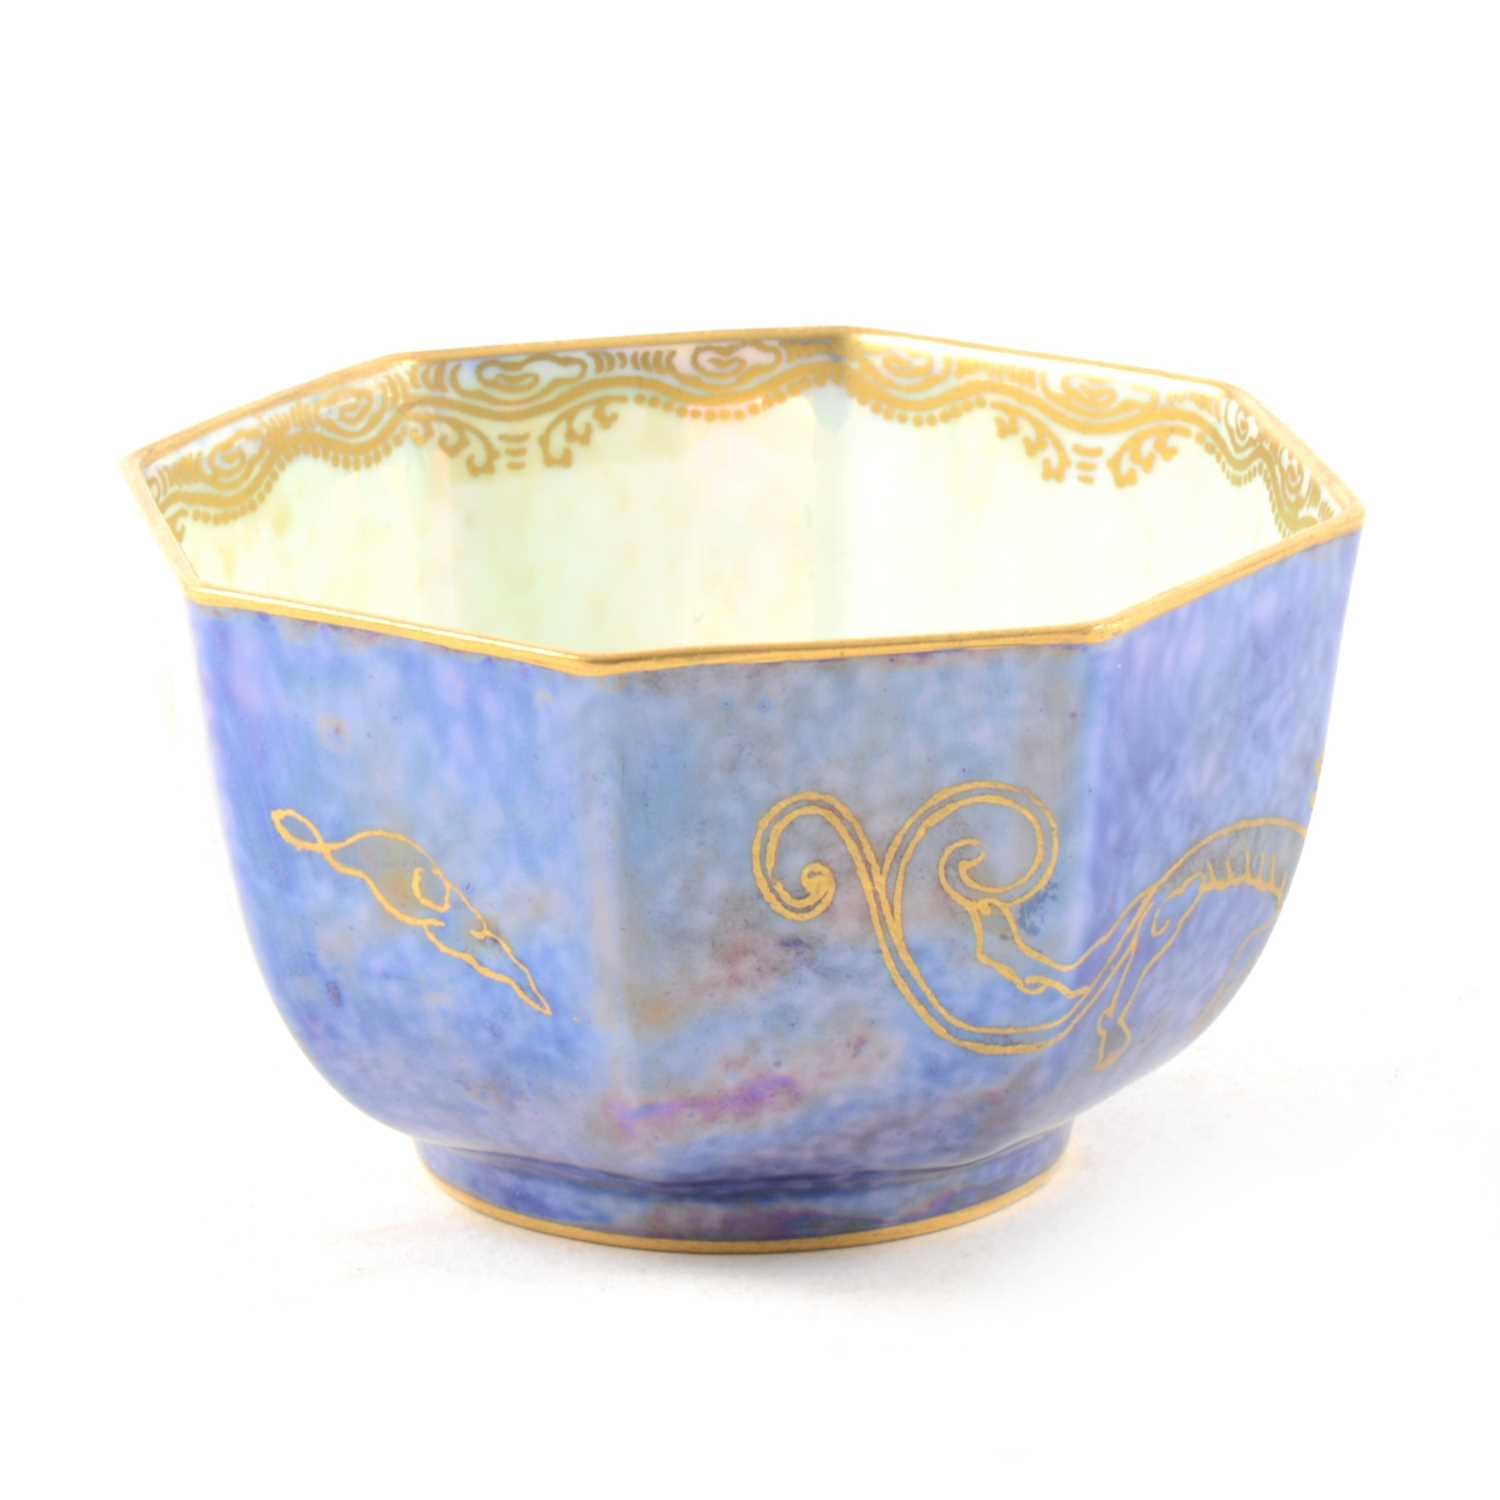 Lot 2-A small Wedgwood lustre octagonal bowl